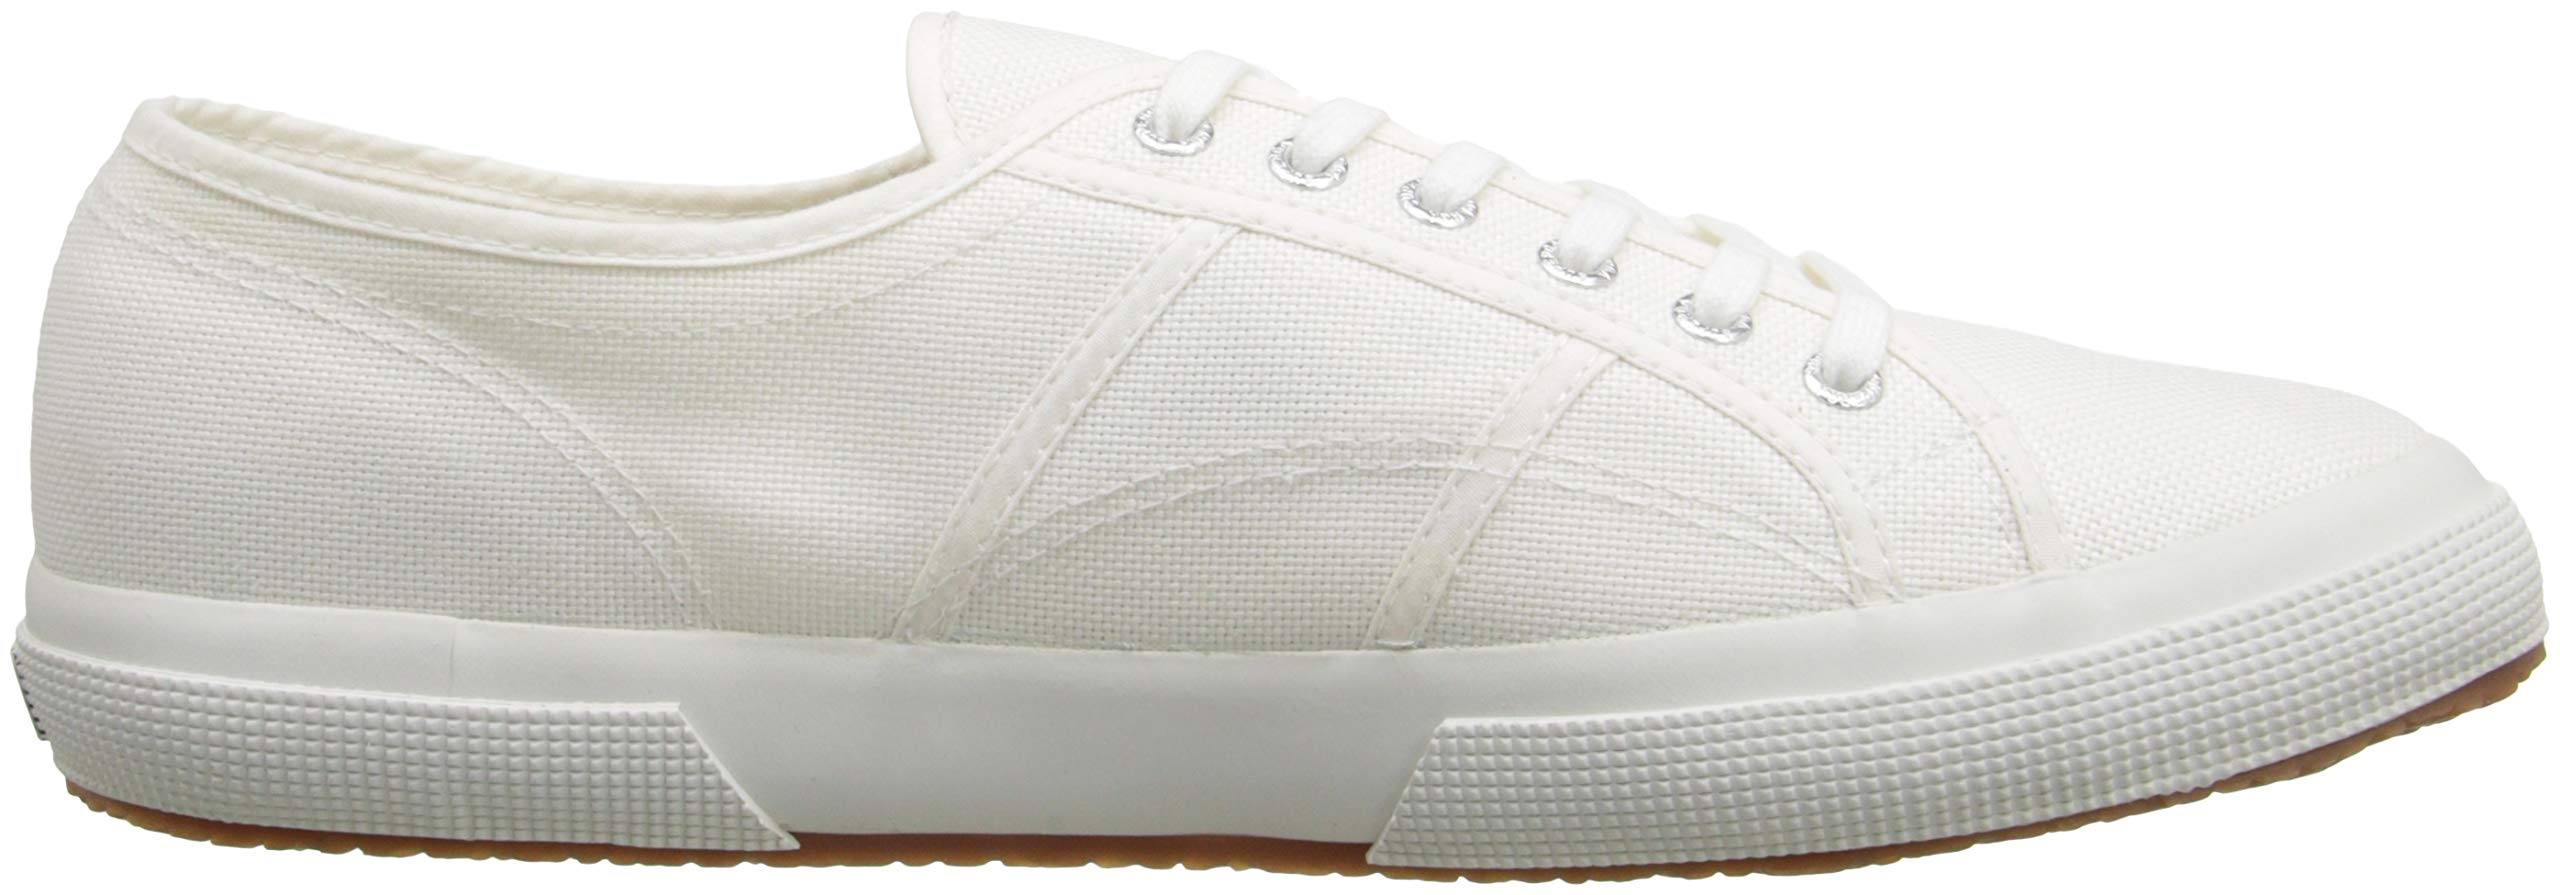 Superga 2750 Cotu Classic, Unisex Adults' Low-Top Sneakers, White, 7.5 UK (41.5 EU) by Superga (Image #7)